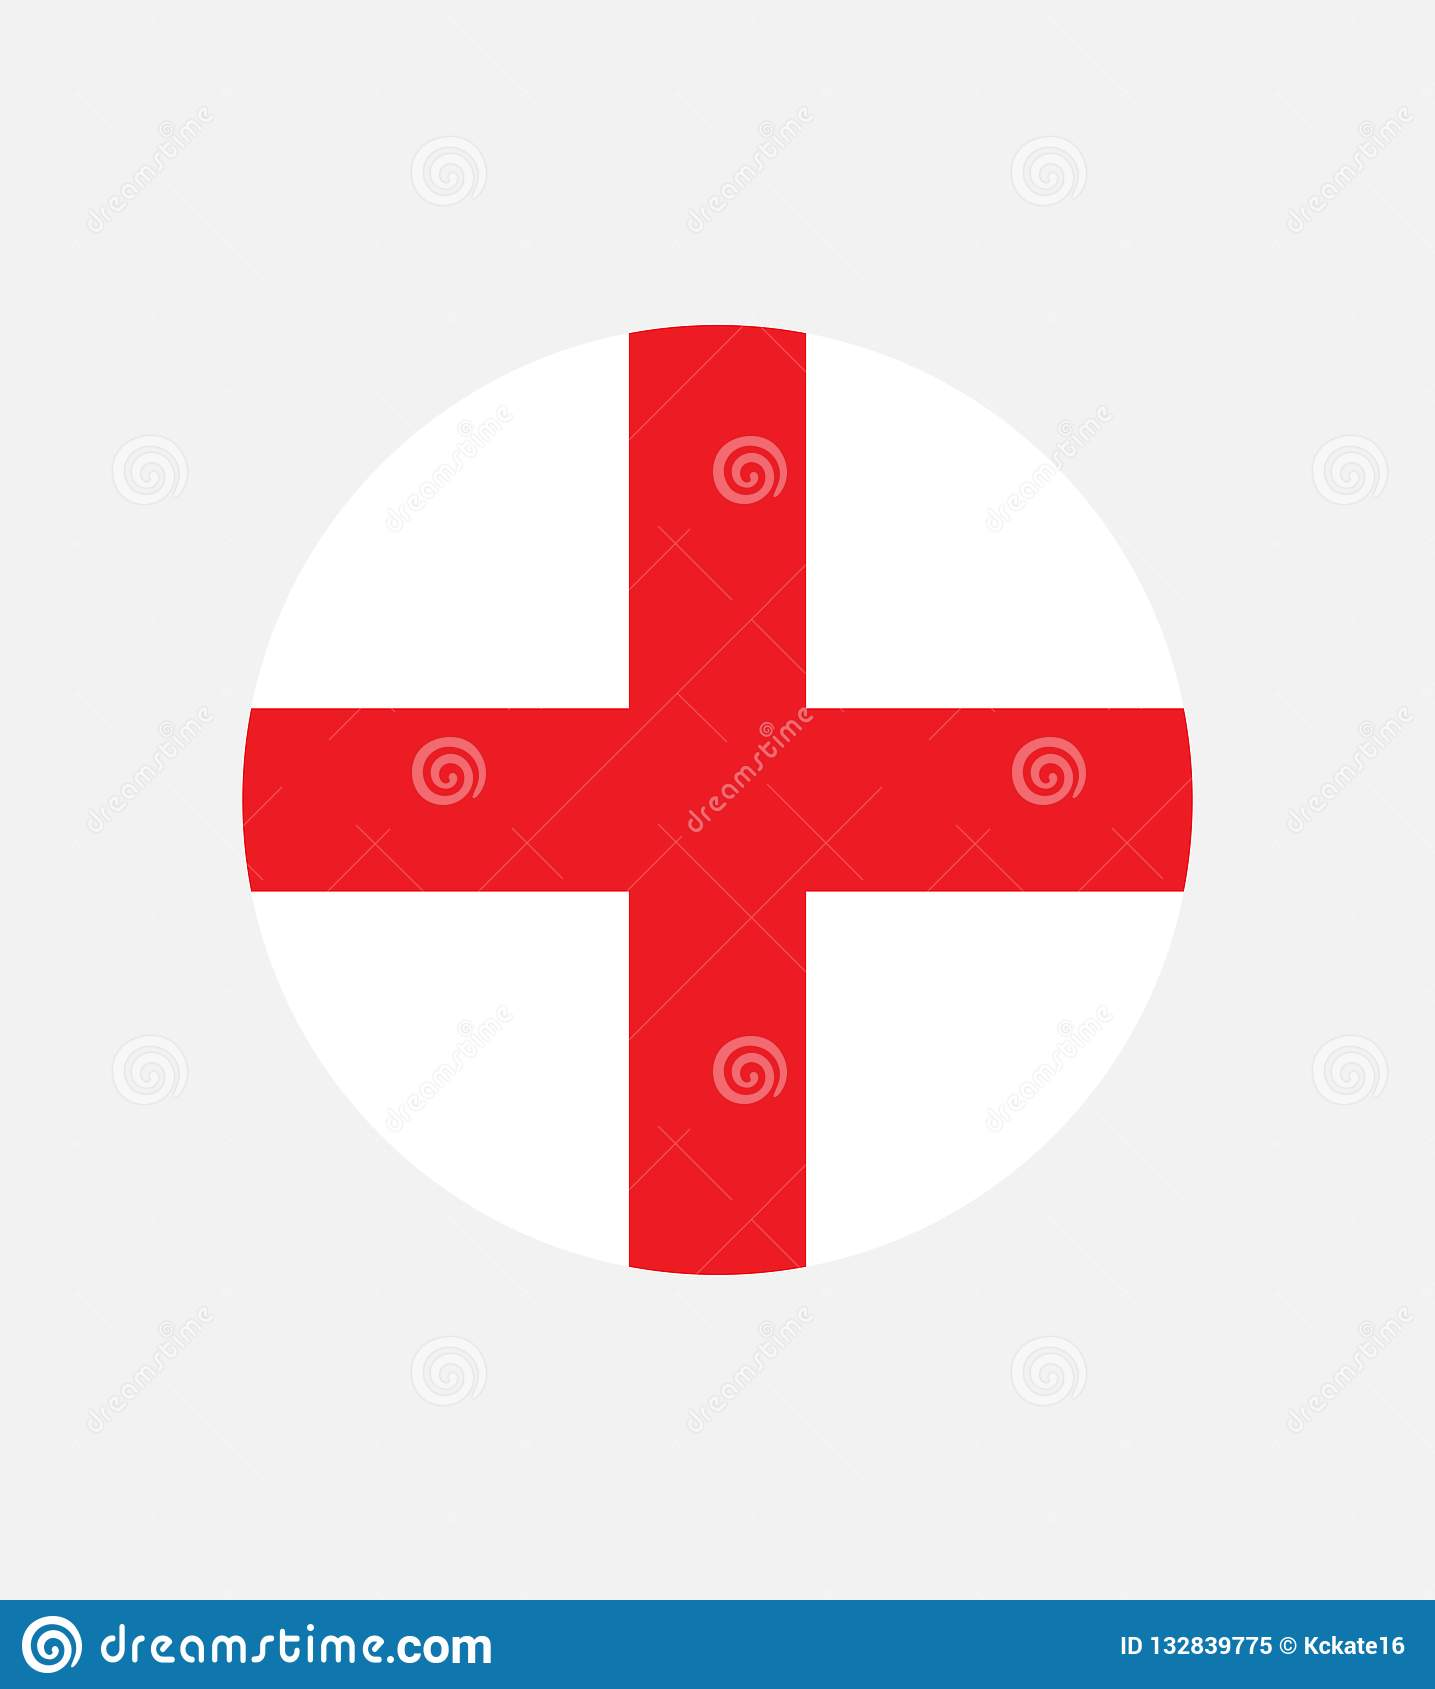 Flag Of England Is A Country That Is Part Of The United Kingdom